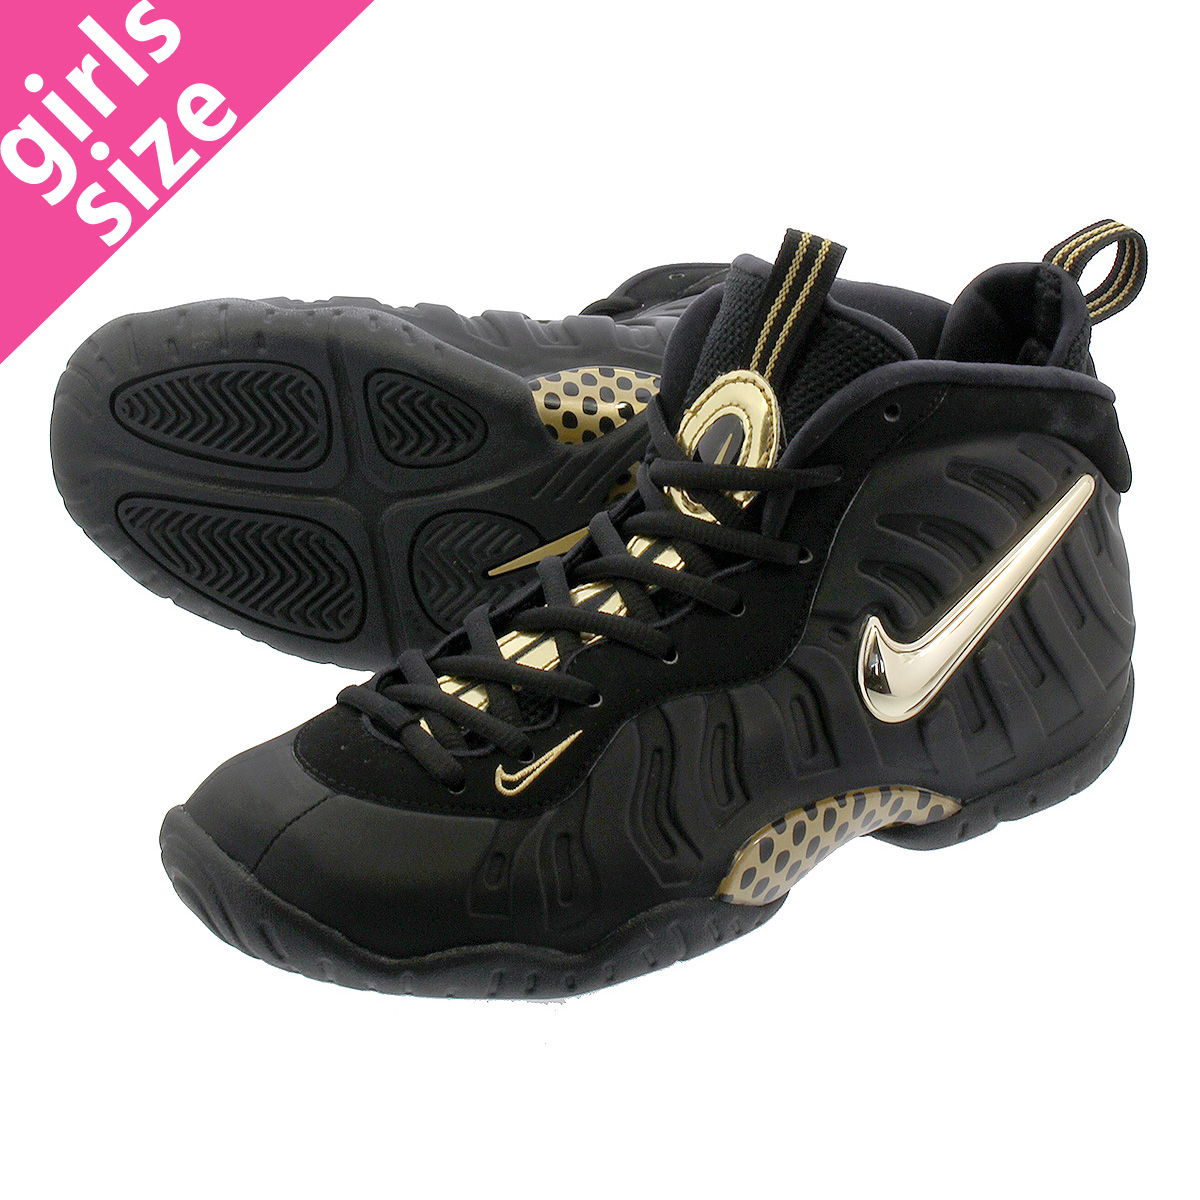 2be484aba97 NIKE LITTLE POSITE PRO GS ナイキリトルポジットプロ GS BLACK METALLIC GOLD 644